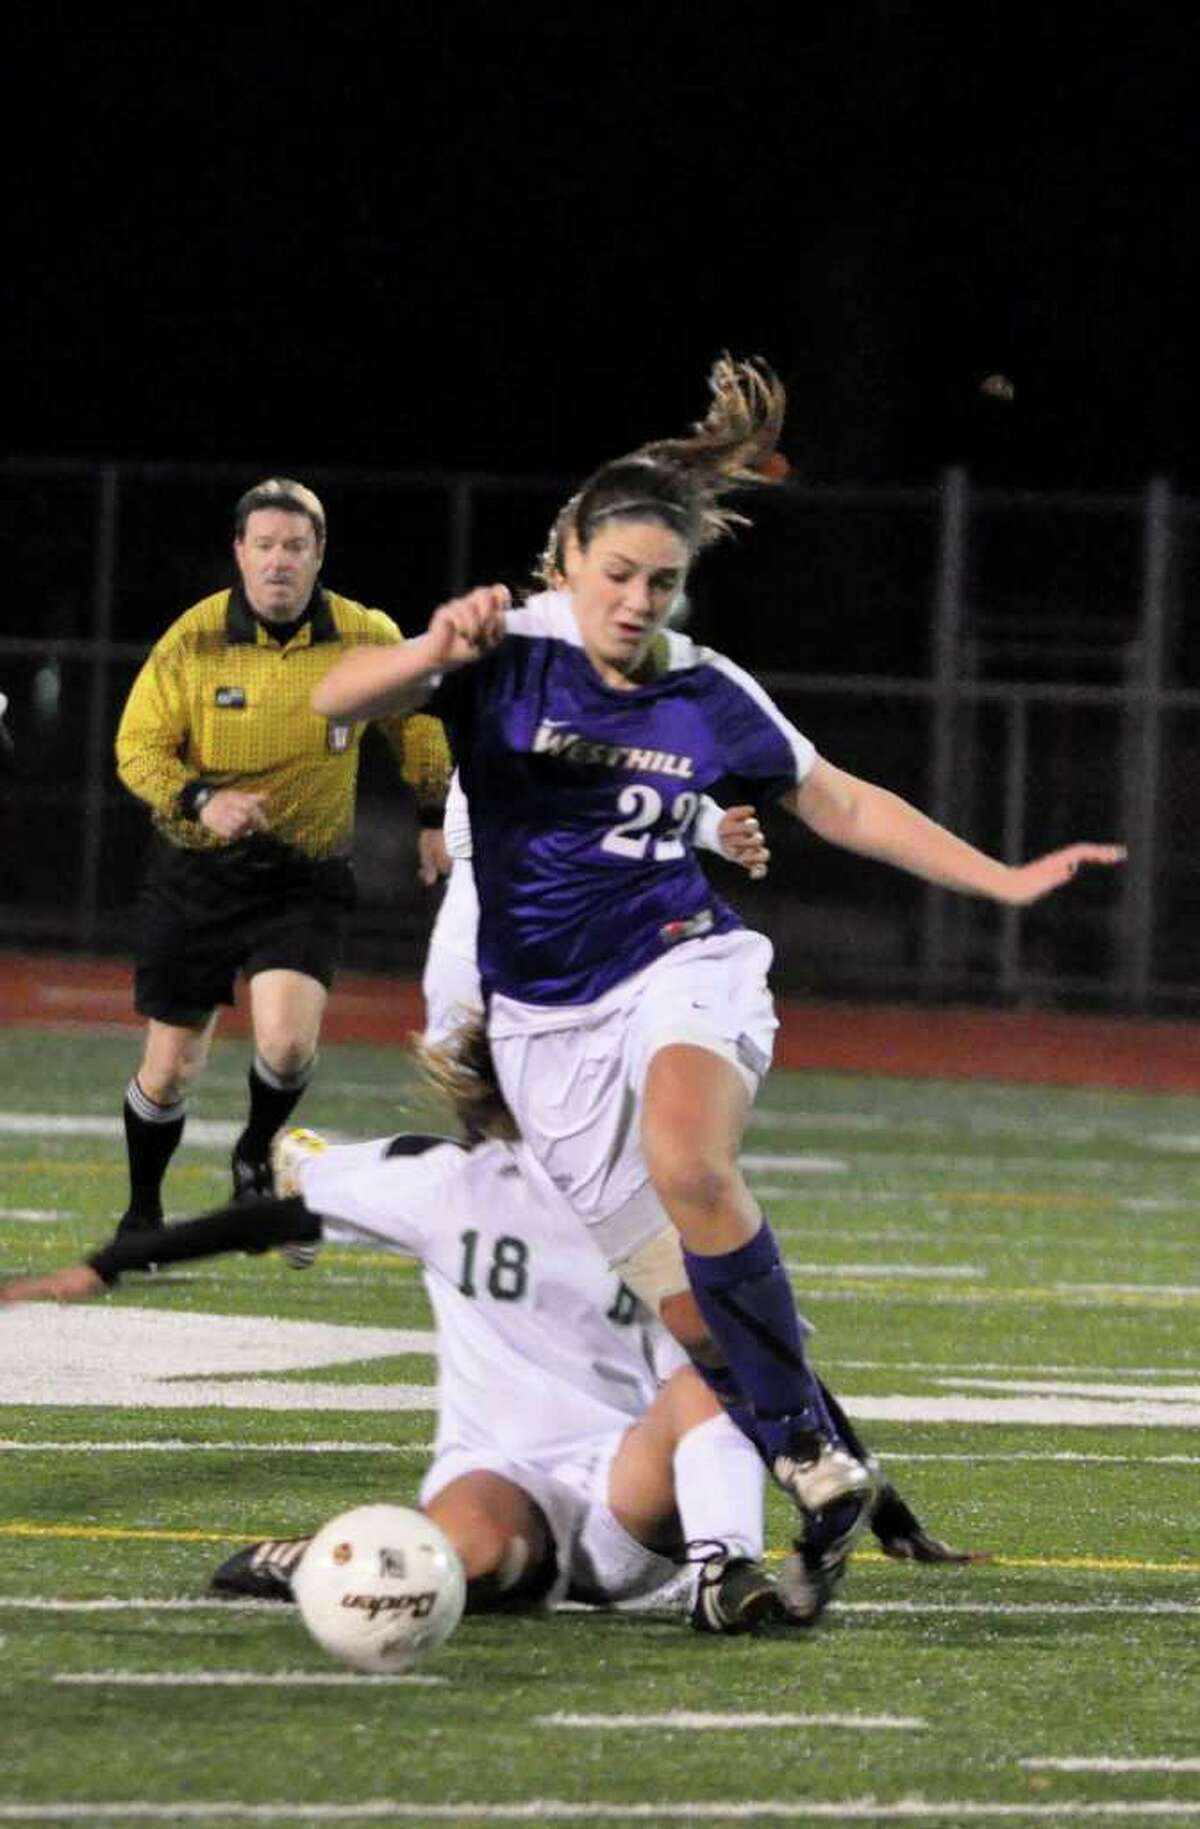 Westhill's Teressa Dunster gets tripped up by Hamden's Gabby Benitez during the Class LL girls soccer semifinals at Norwalk High on Wednesday, Nov. 17, 2010.